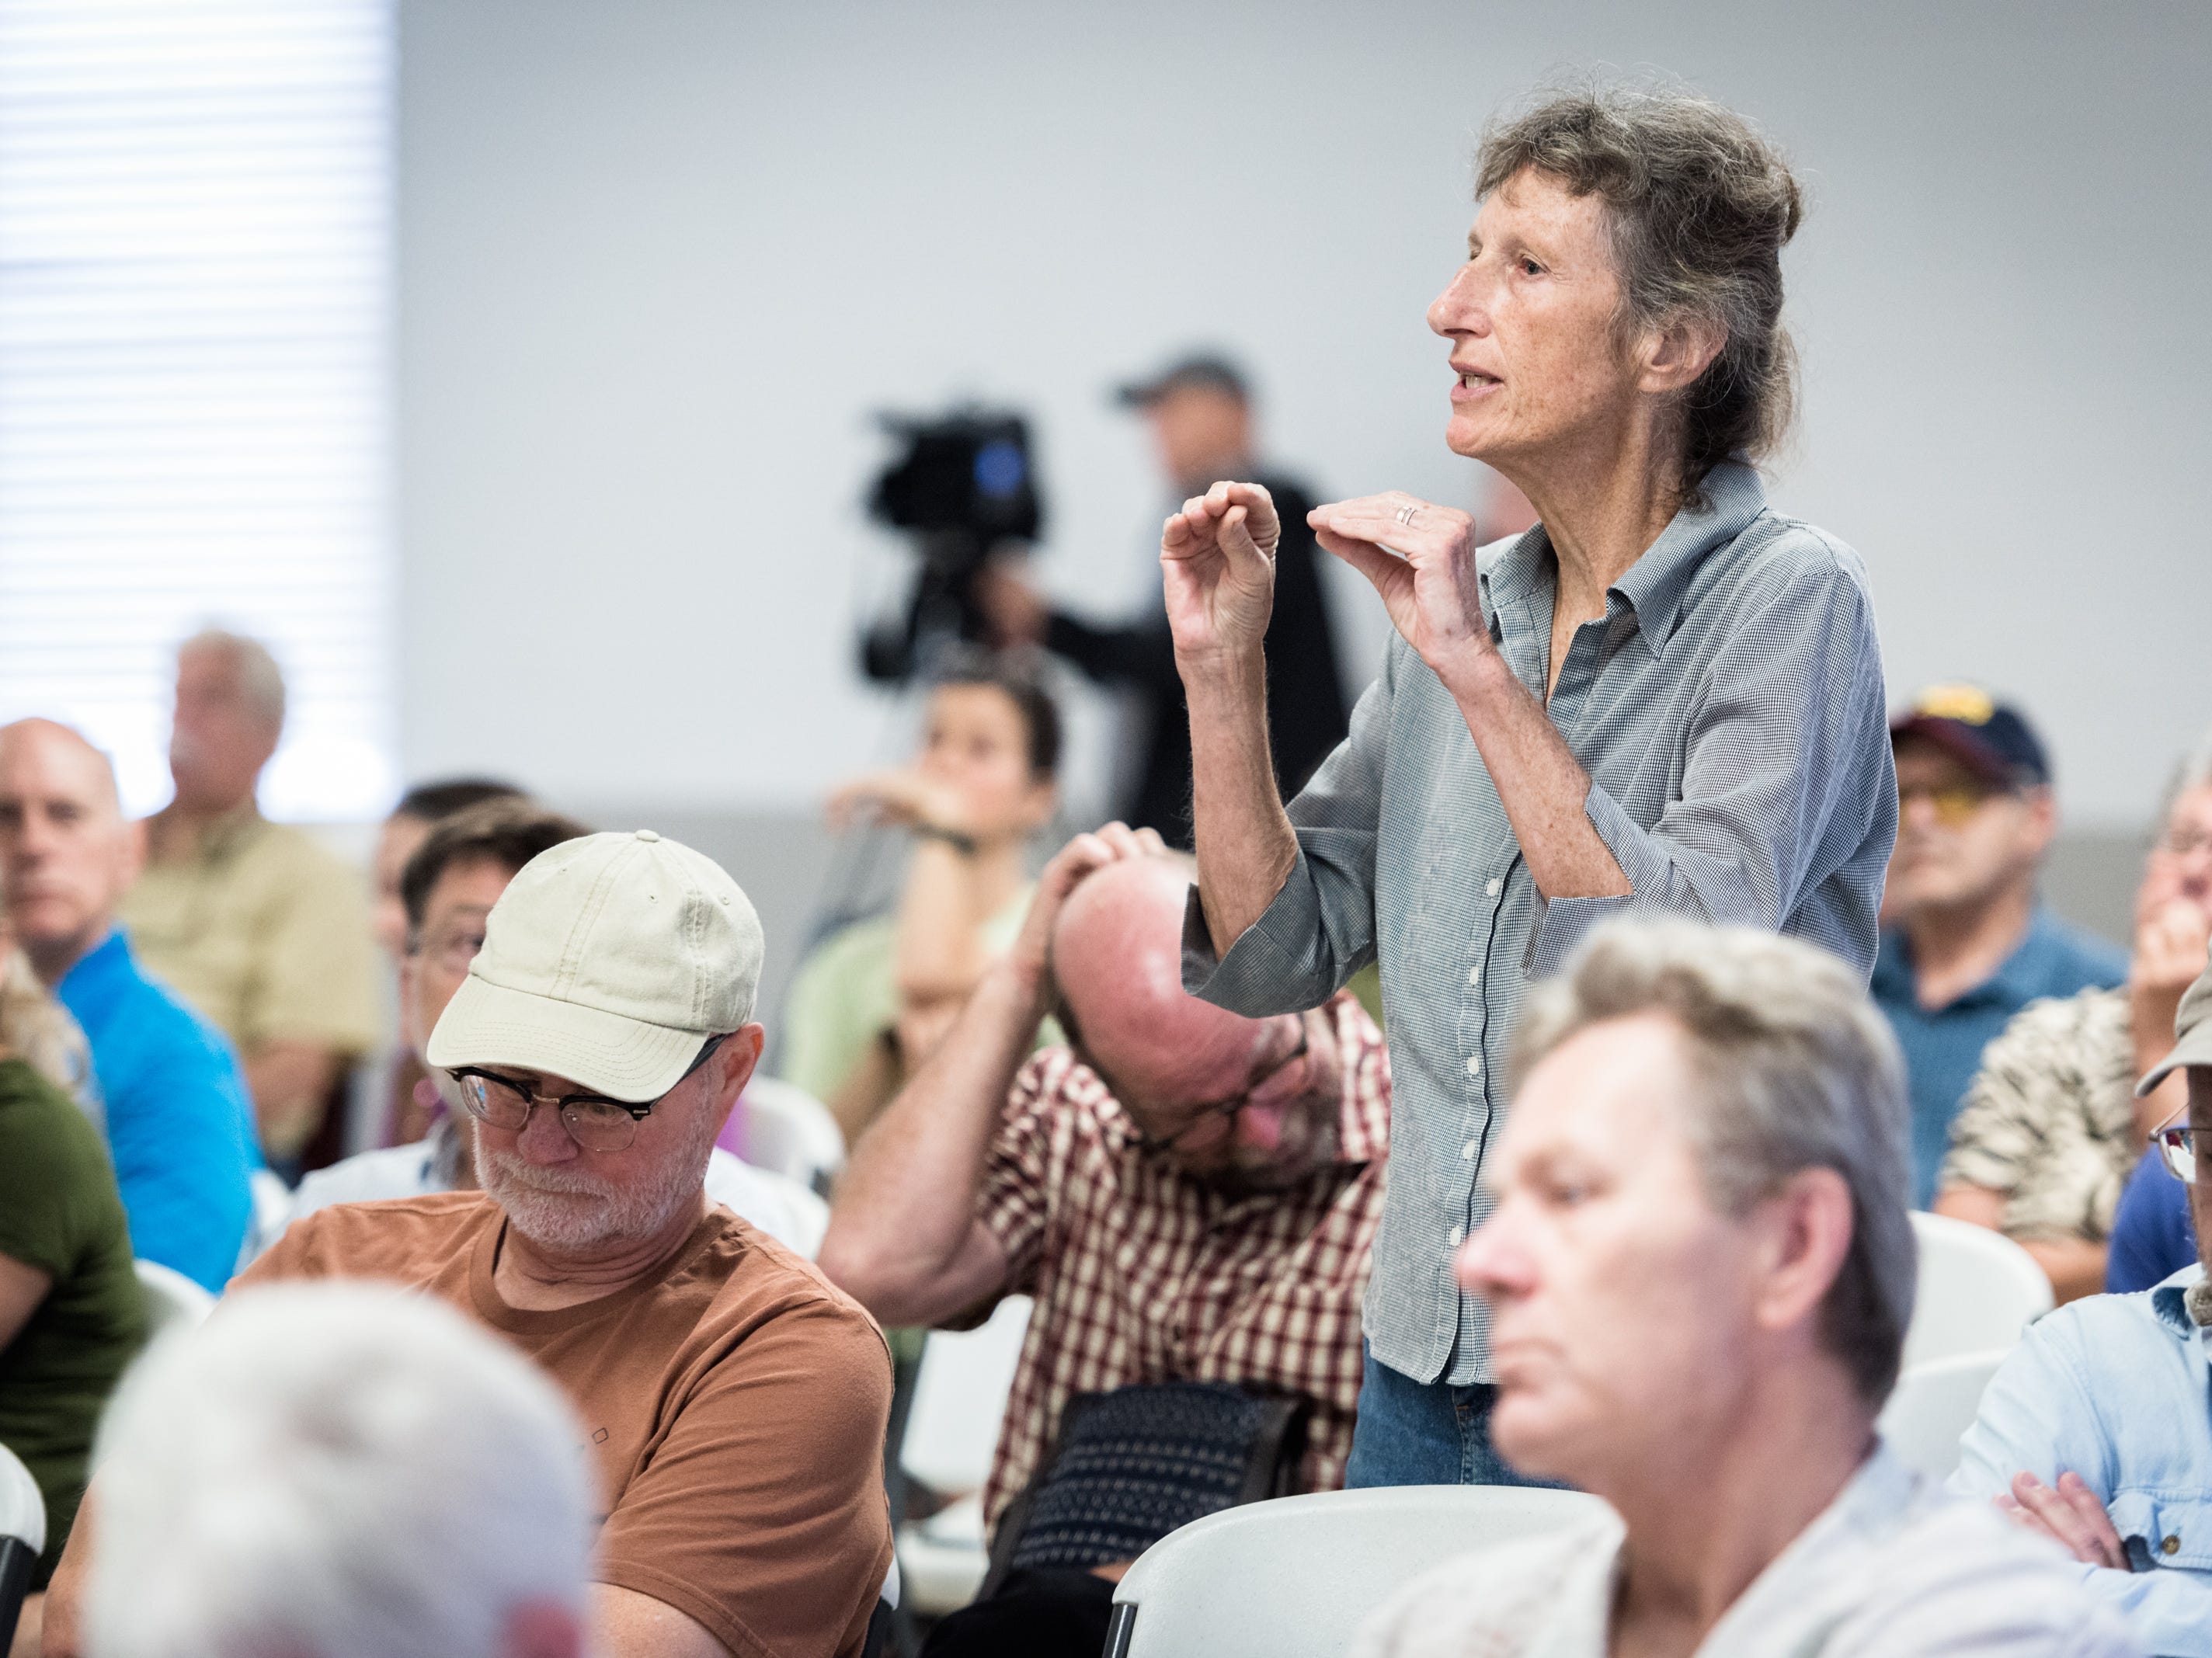 Cathy Scott, of Asheville, questions Patrick McHenry, the U.S representative for North Carolina's 10th congressional district, on why he has not condemned the behavior of president Donald Trump during a town hall meeting at the Riceville Volunteer Fire Department Wednesday, August 1, 2018.